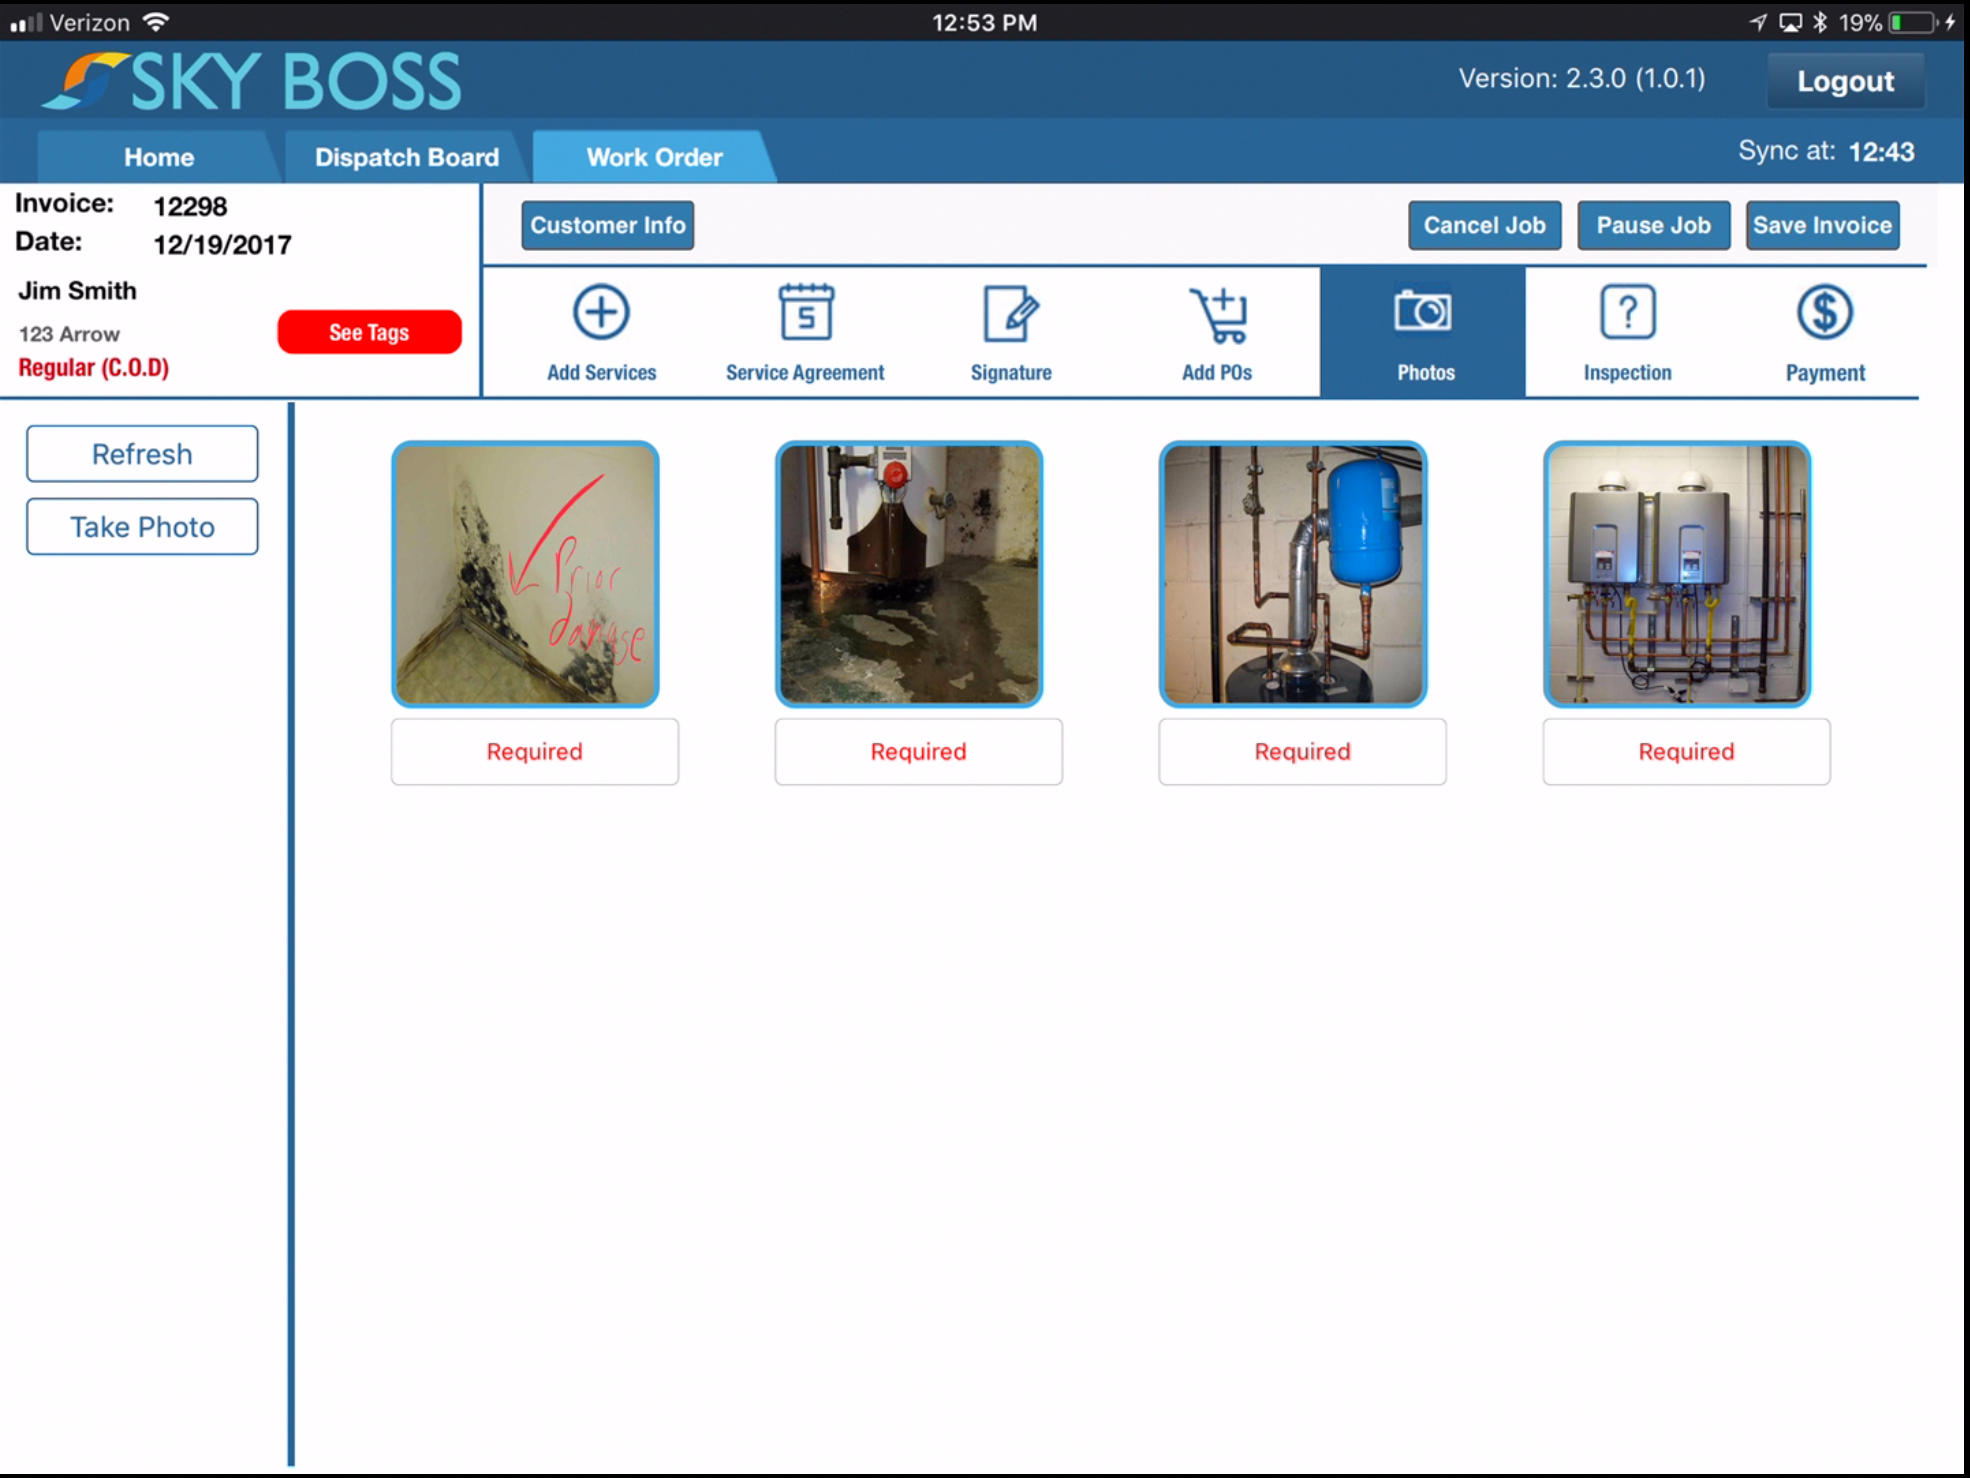 The system provides the option for taking or uploading photos that can then be attached to work orders and invoices